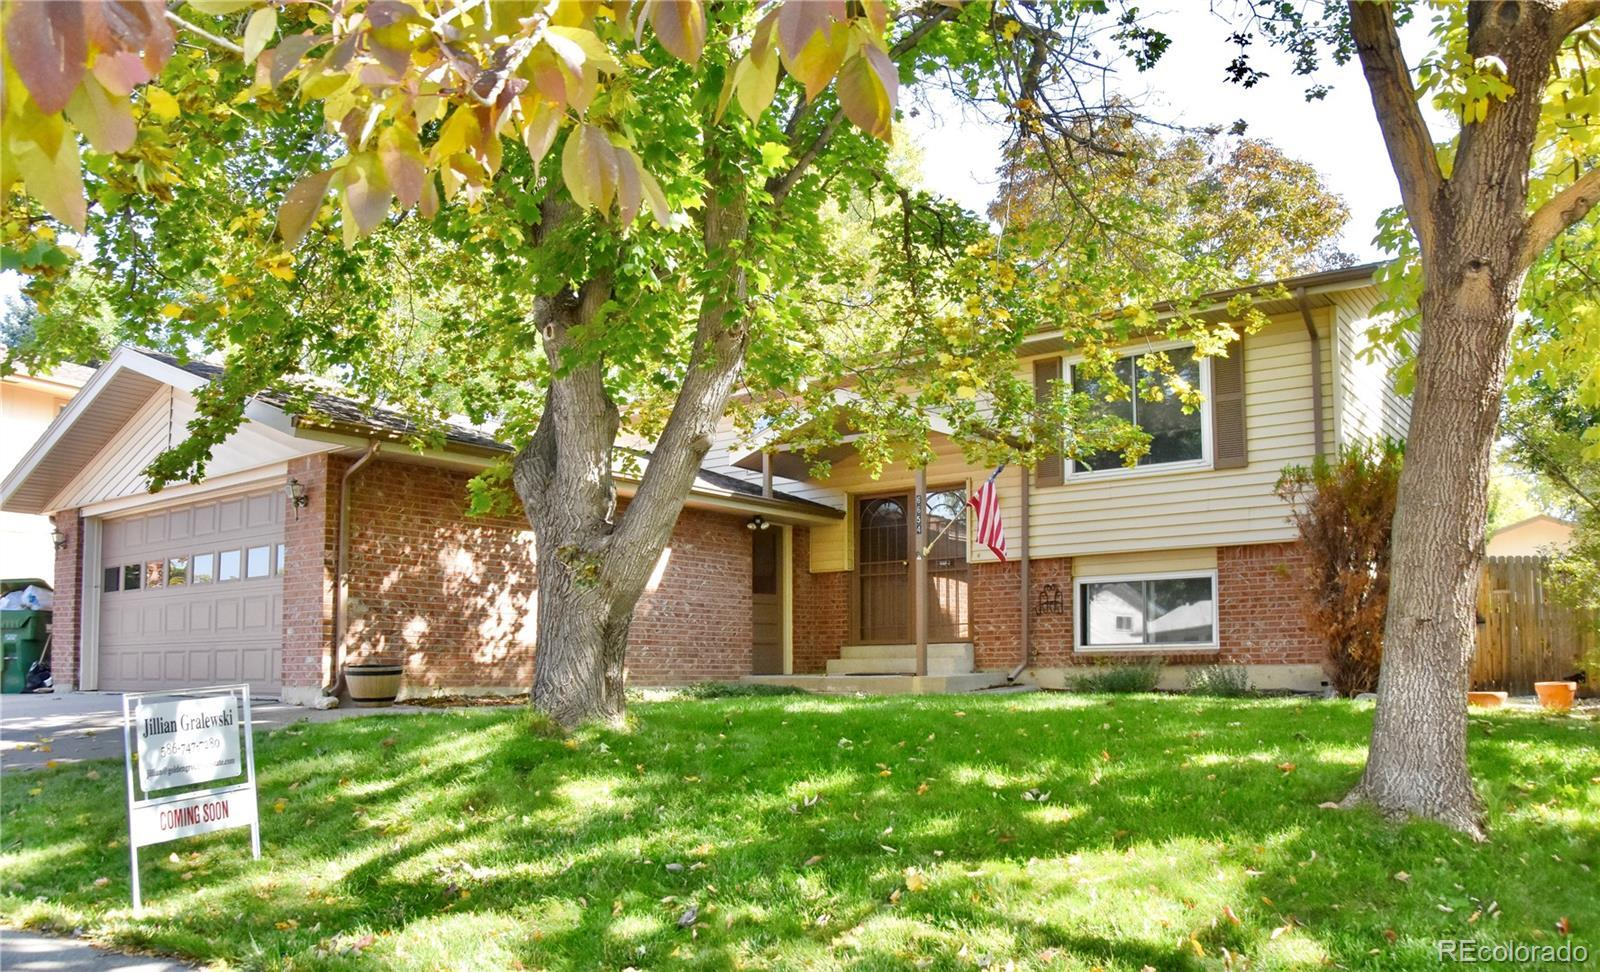 6654 Zang Court, Arvada, CO 80004 - #: 4386669